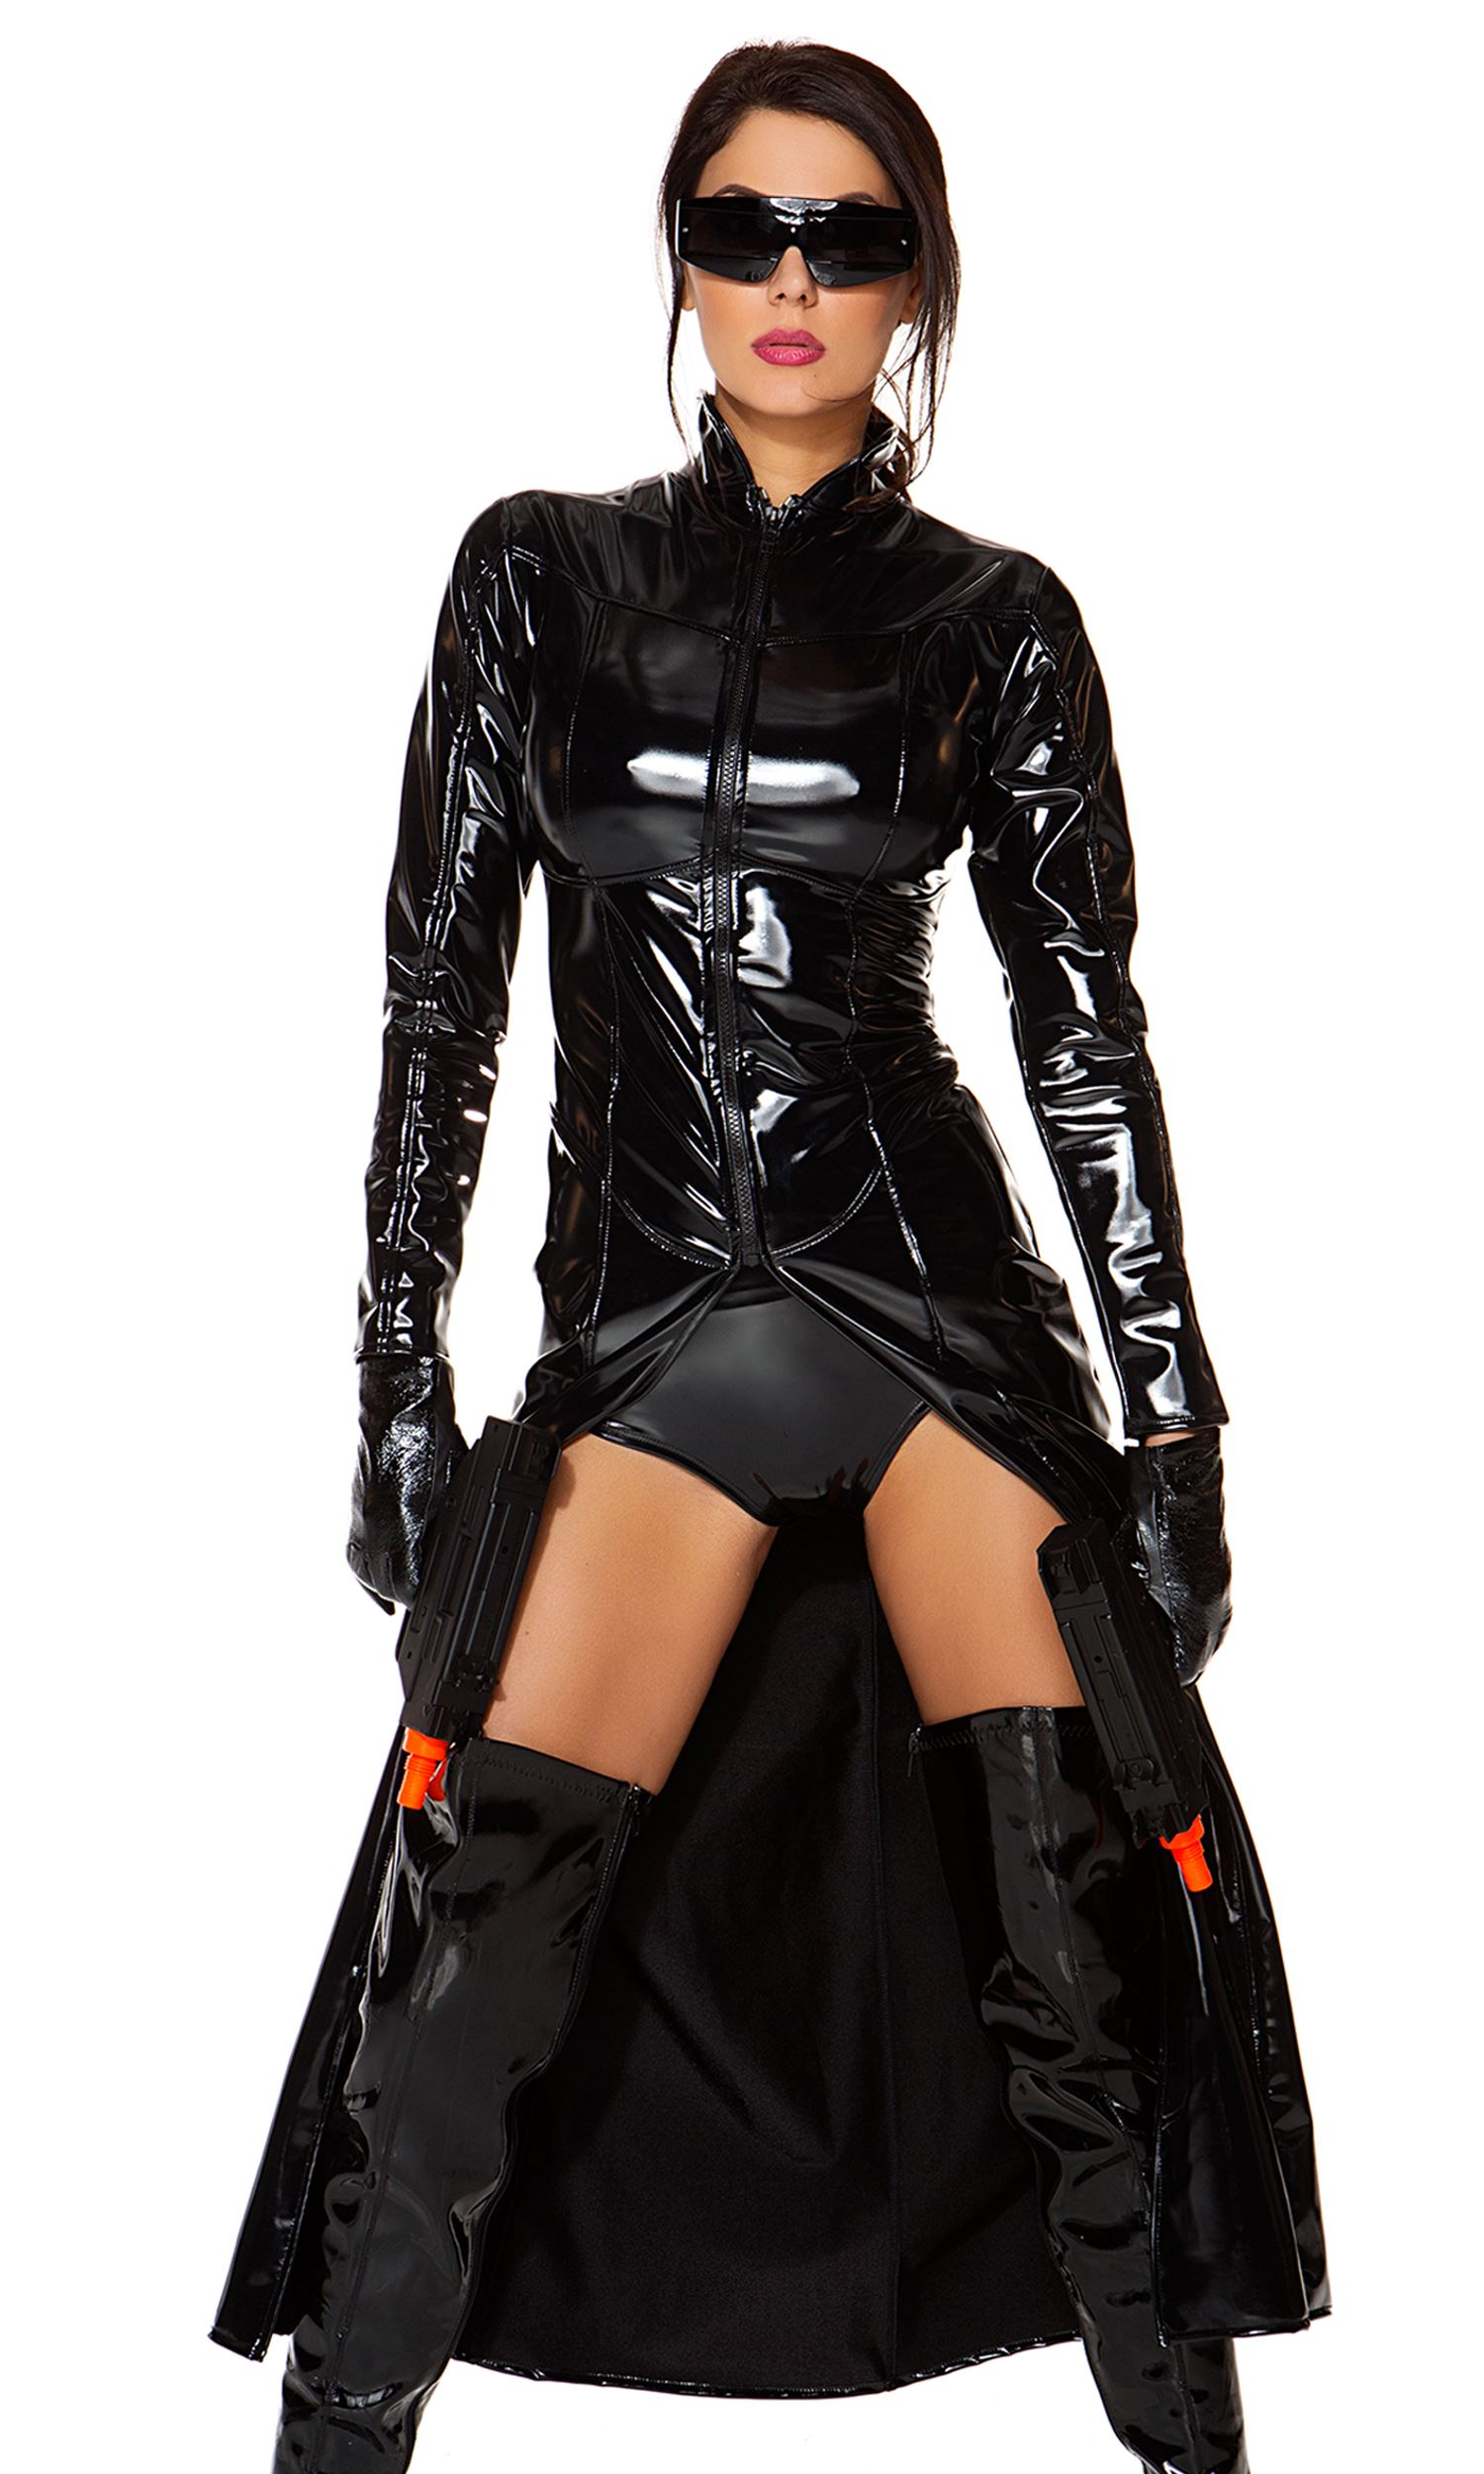 Adult Reloaded Movie Character Costume ...  sc 1 st  The Costume Land & Adult Reloaded Movie Character Costume | $91.99 | The Costume Land